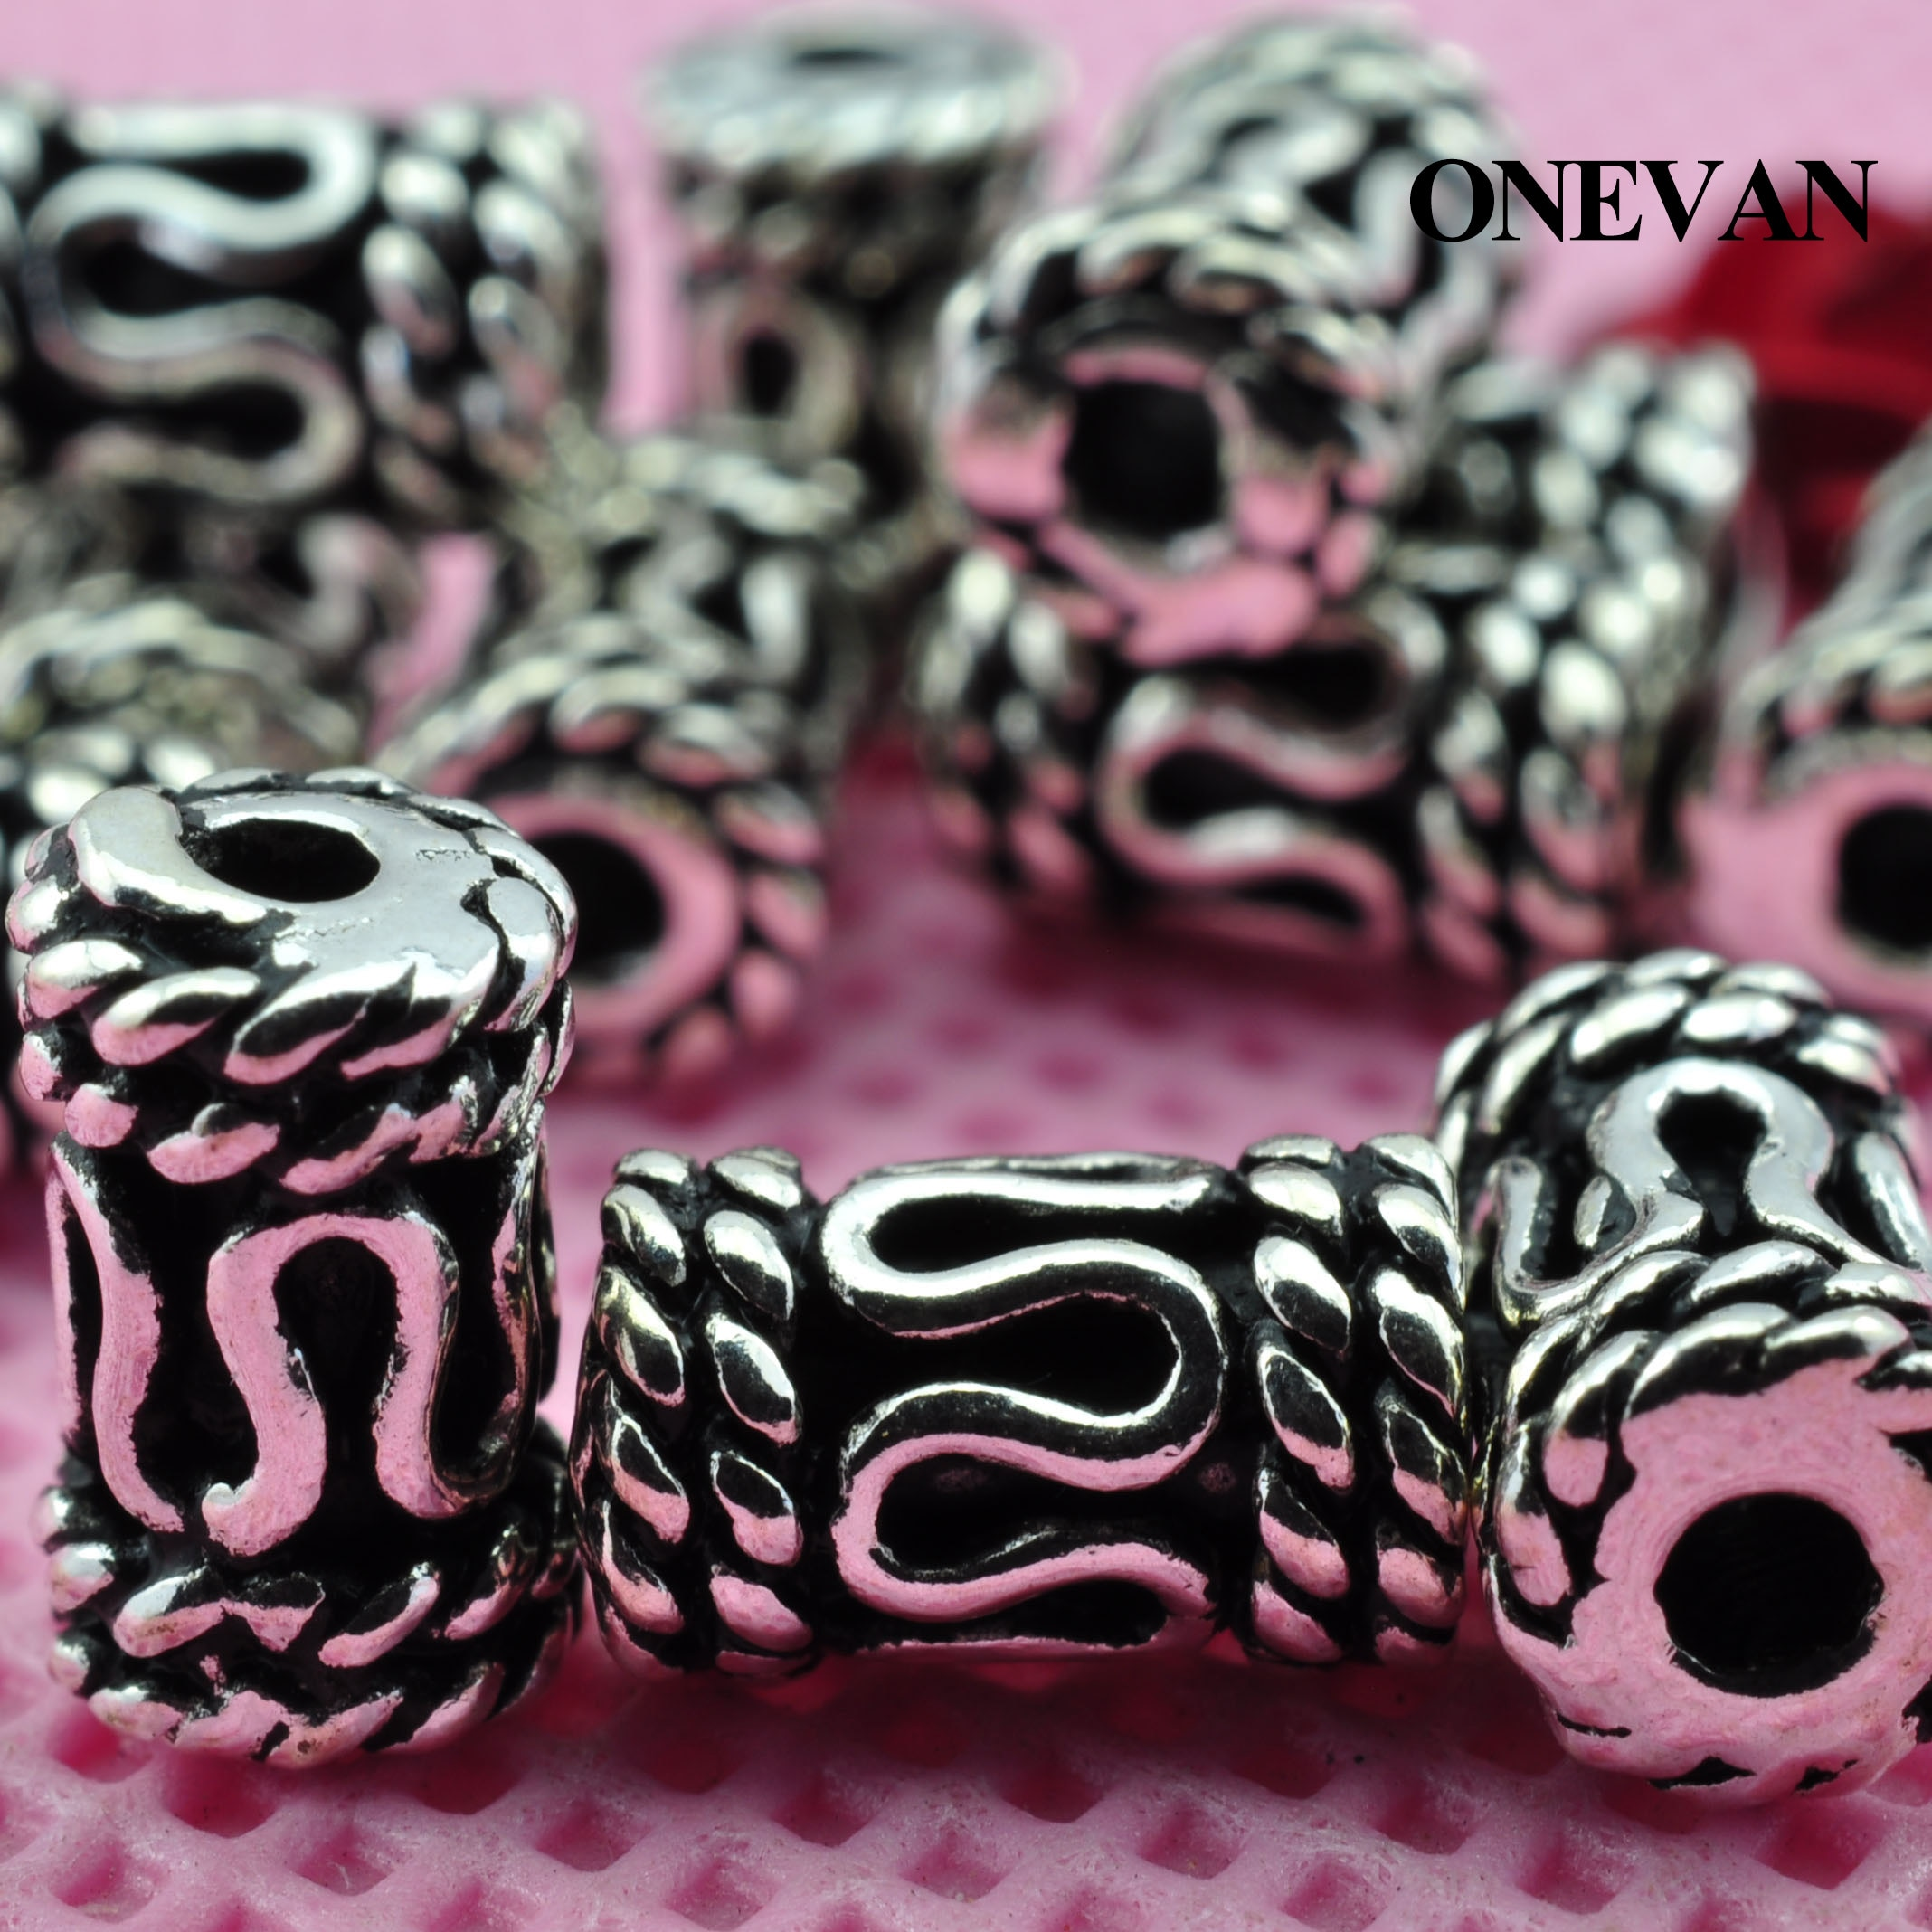 ONEVAN 100% 925 Sterling Silver Cylindrical Carved Charm Accessories Handmade Beaded Diy Bracelet Necklace Jewelry Making Design